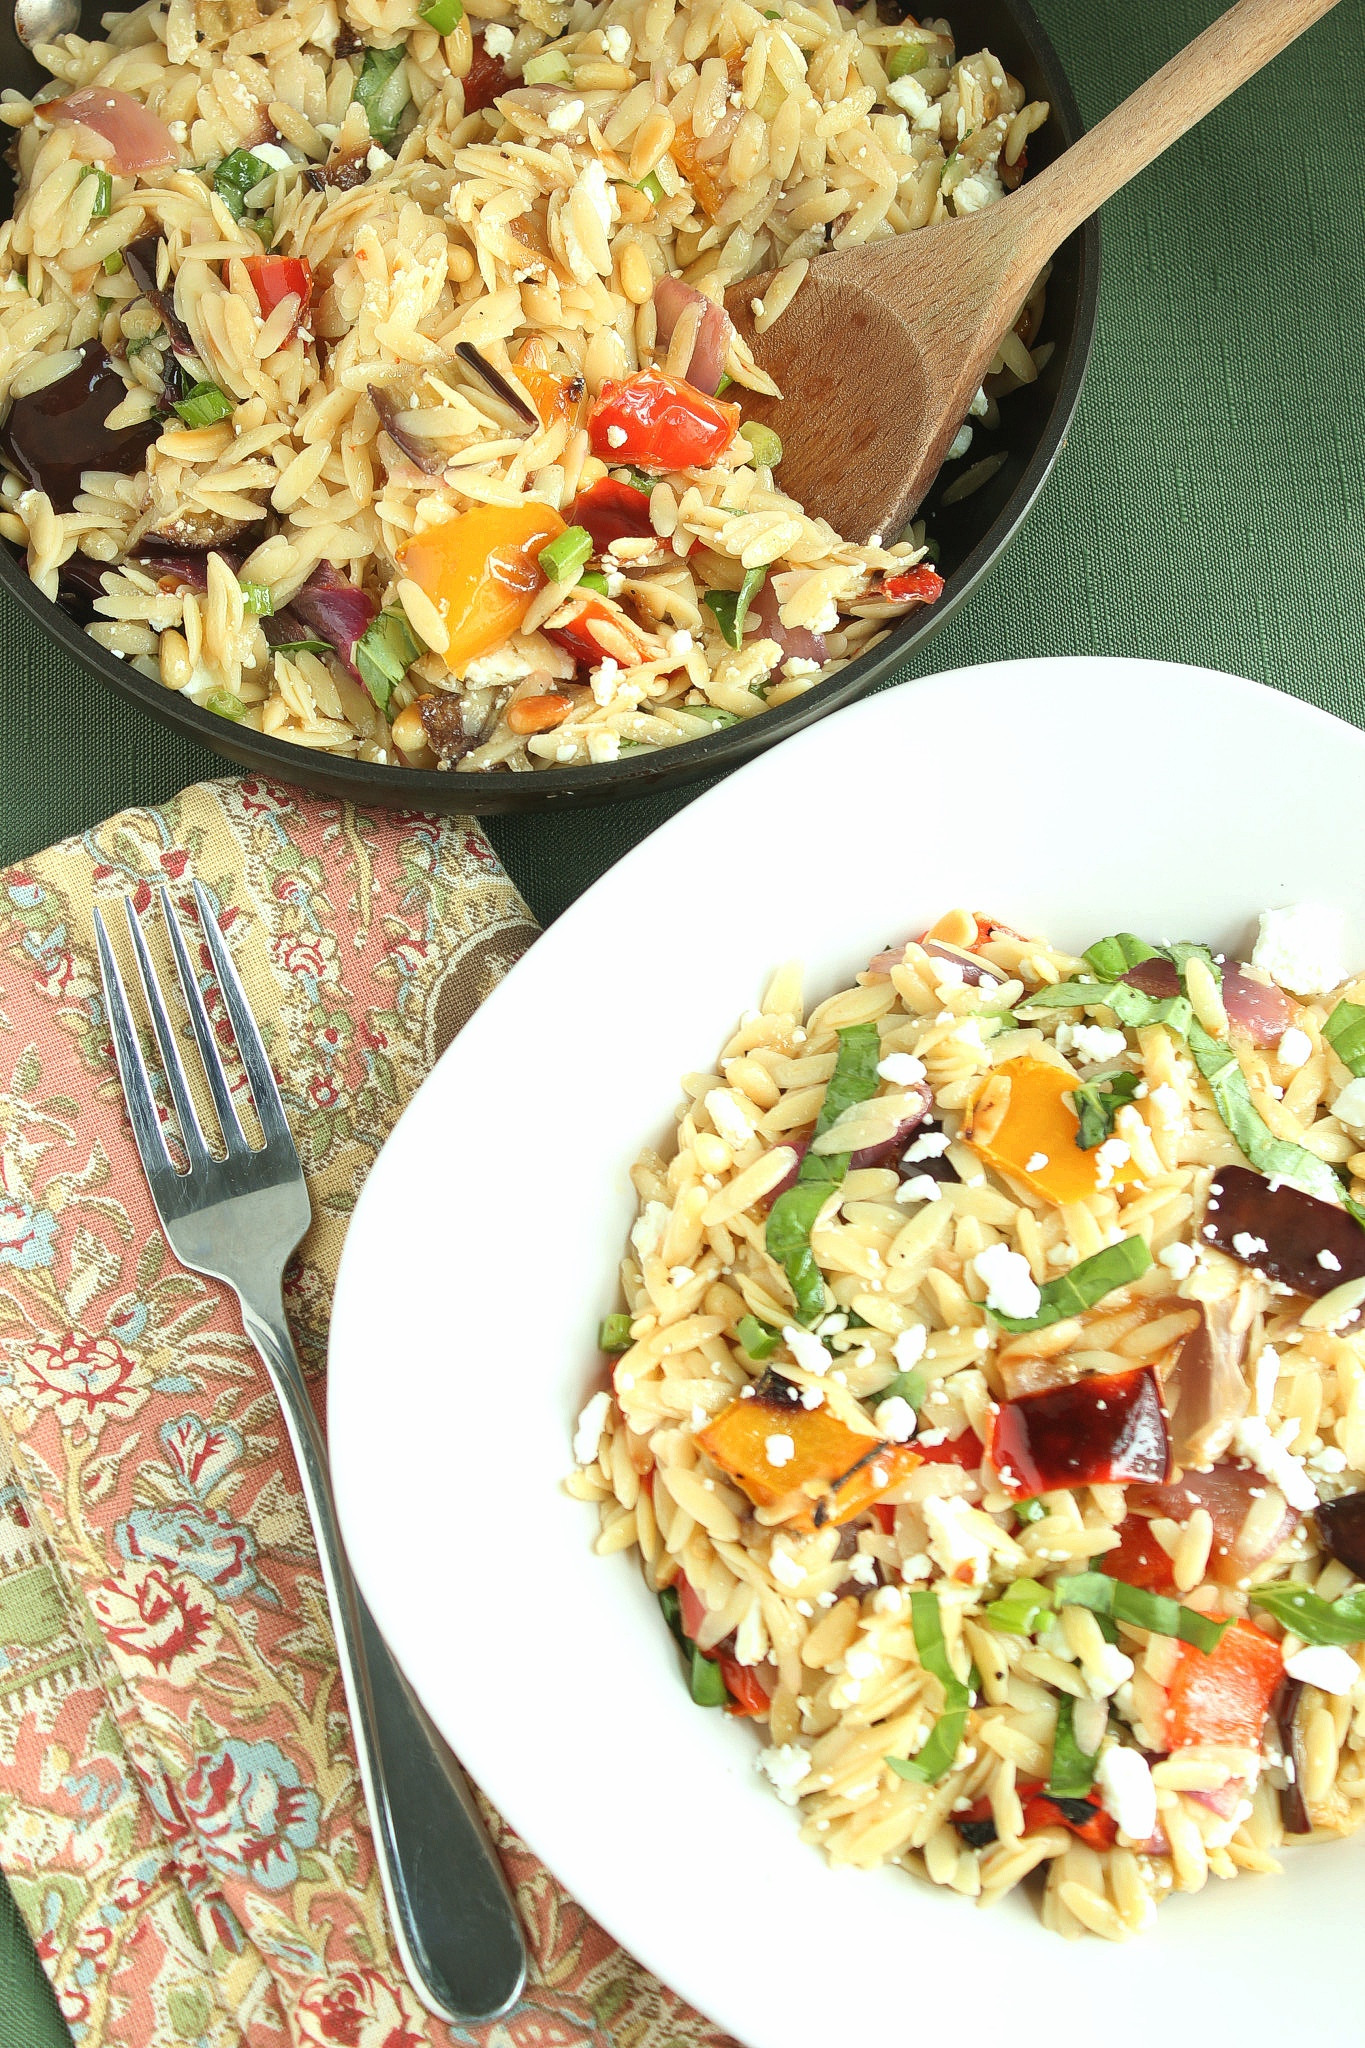 Roasted Vegetables Barefoot Contessa  Ina Garten's Orzo with Roasted Ve ables